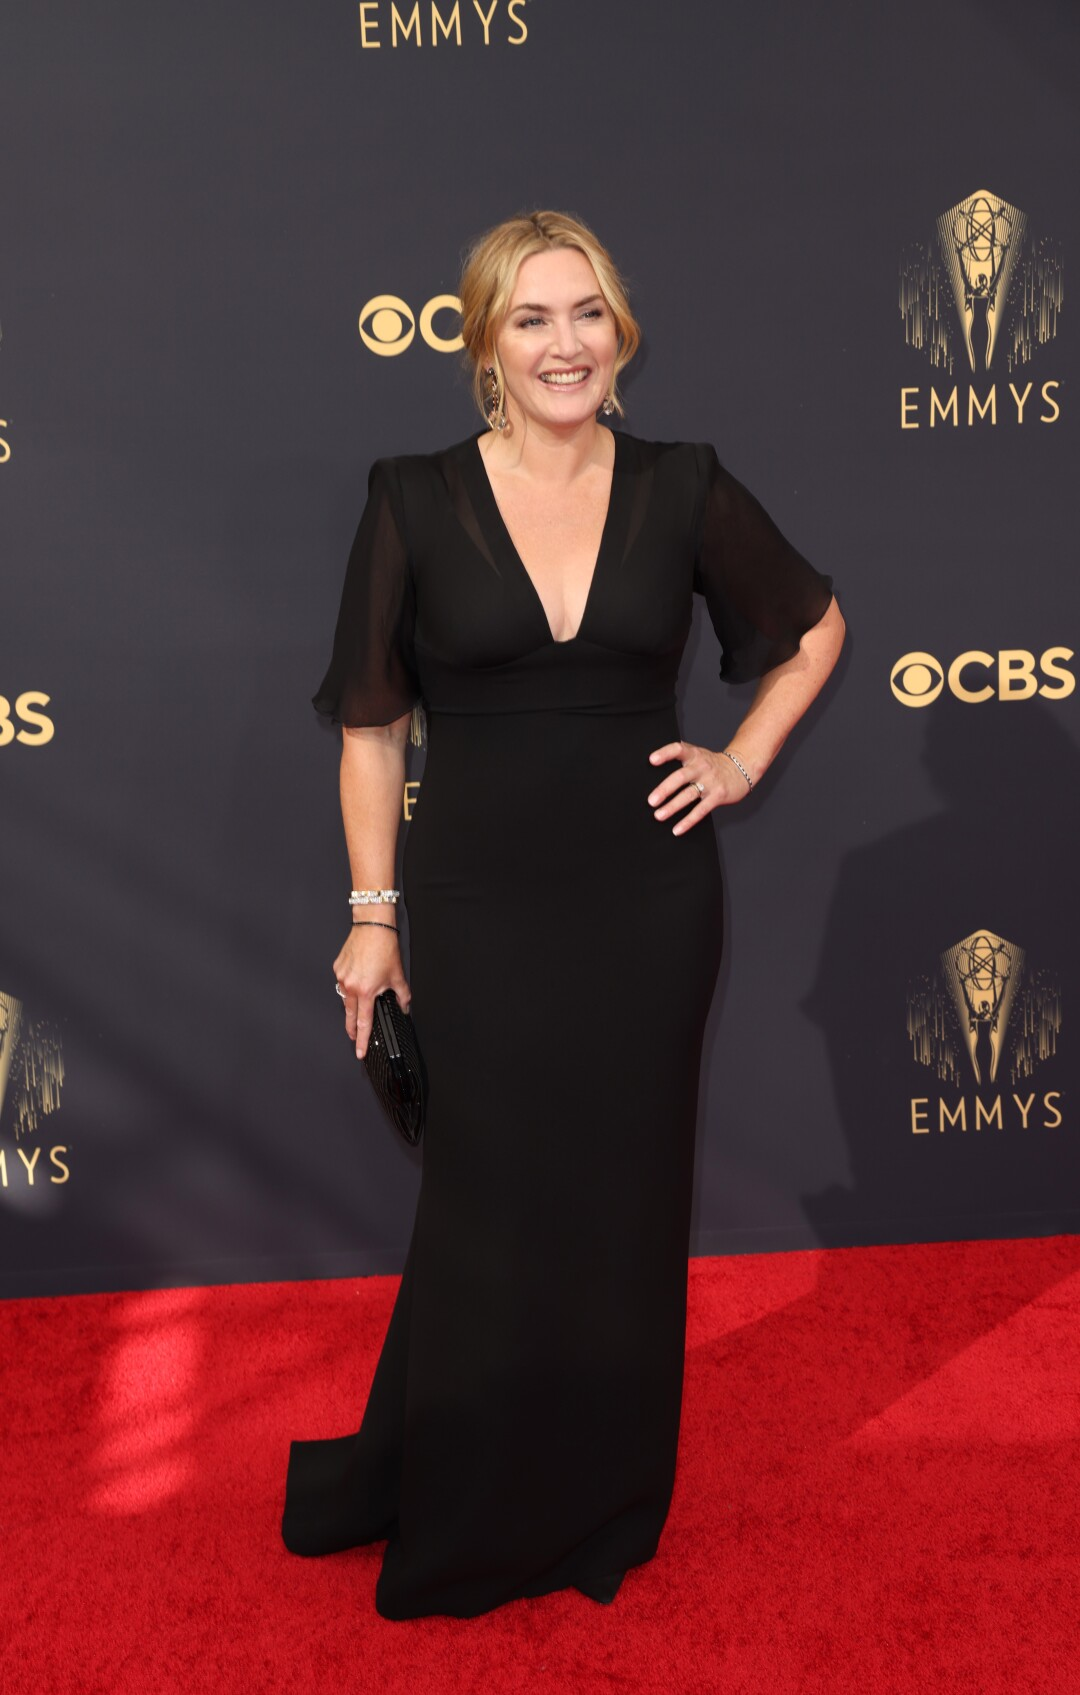 Kate Winslet in a long dark V-neck gown on the red carpet.